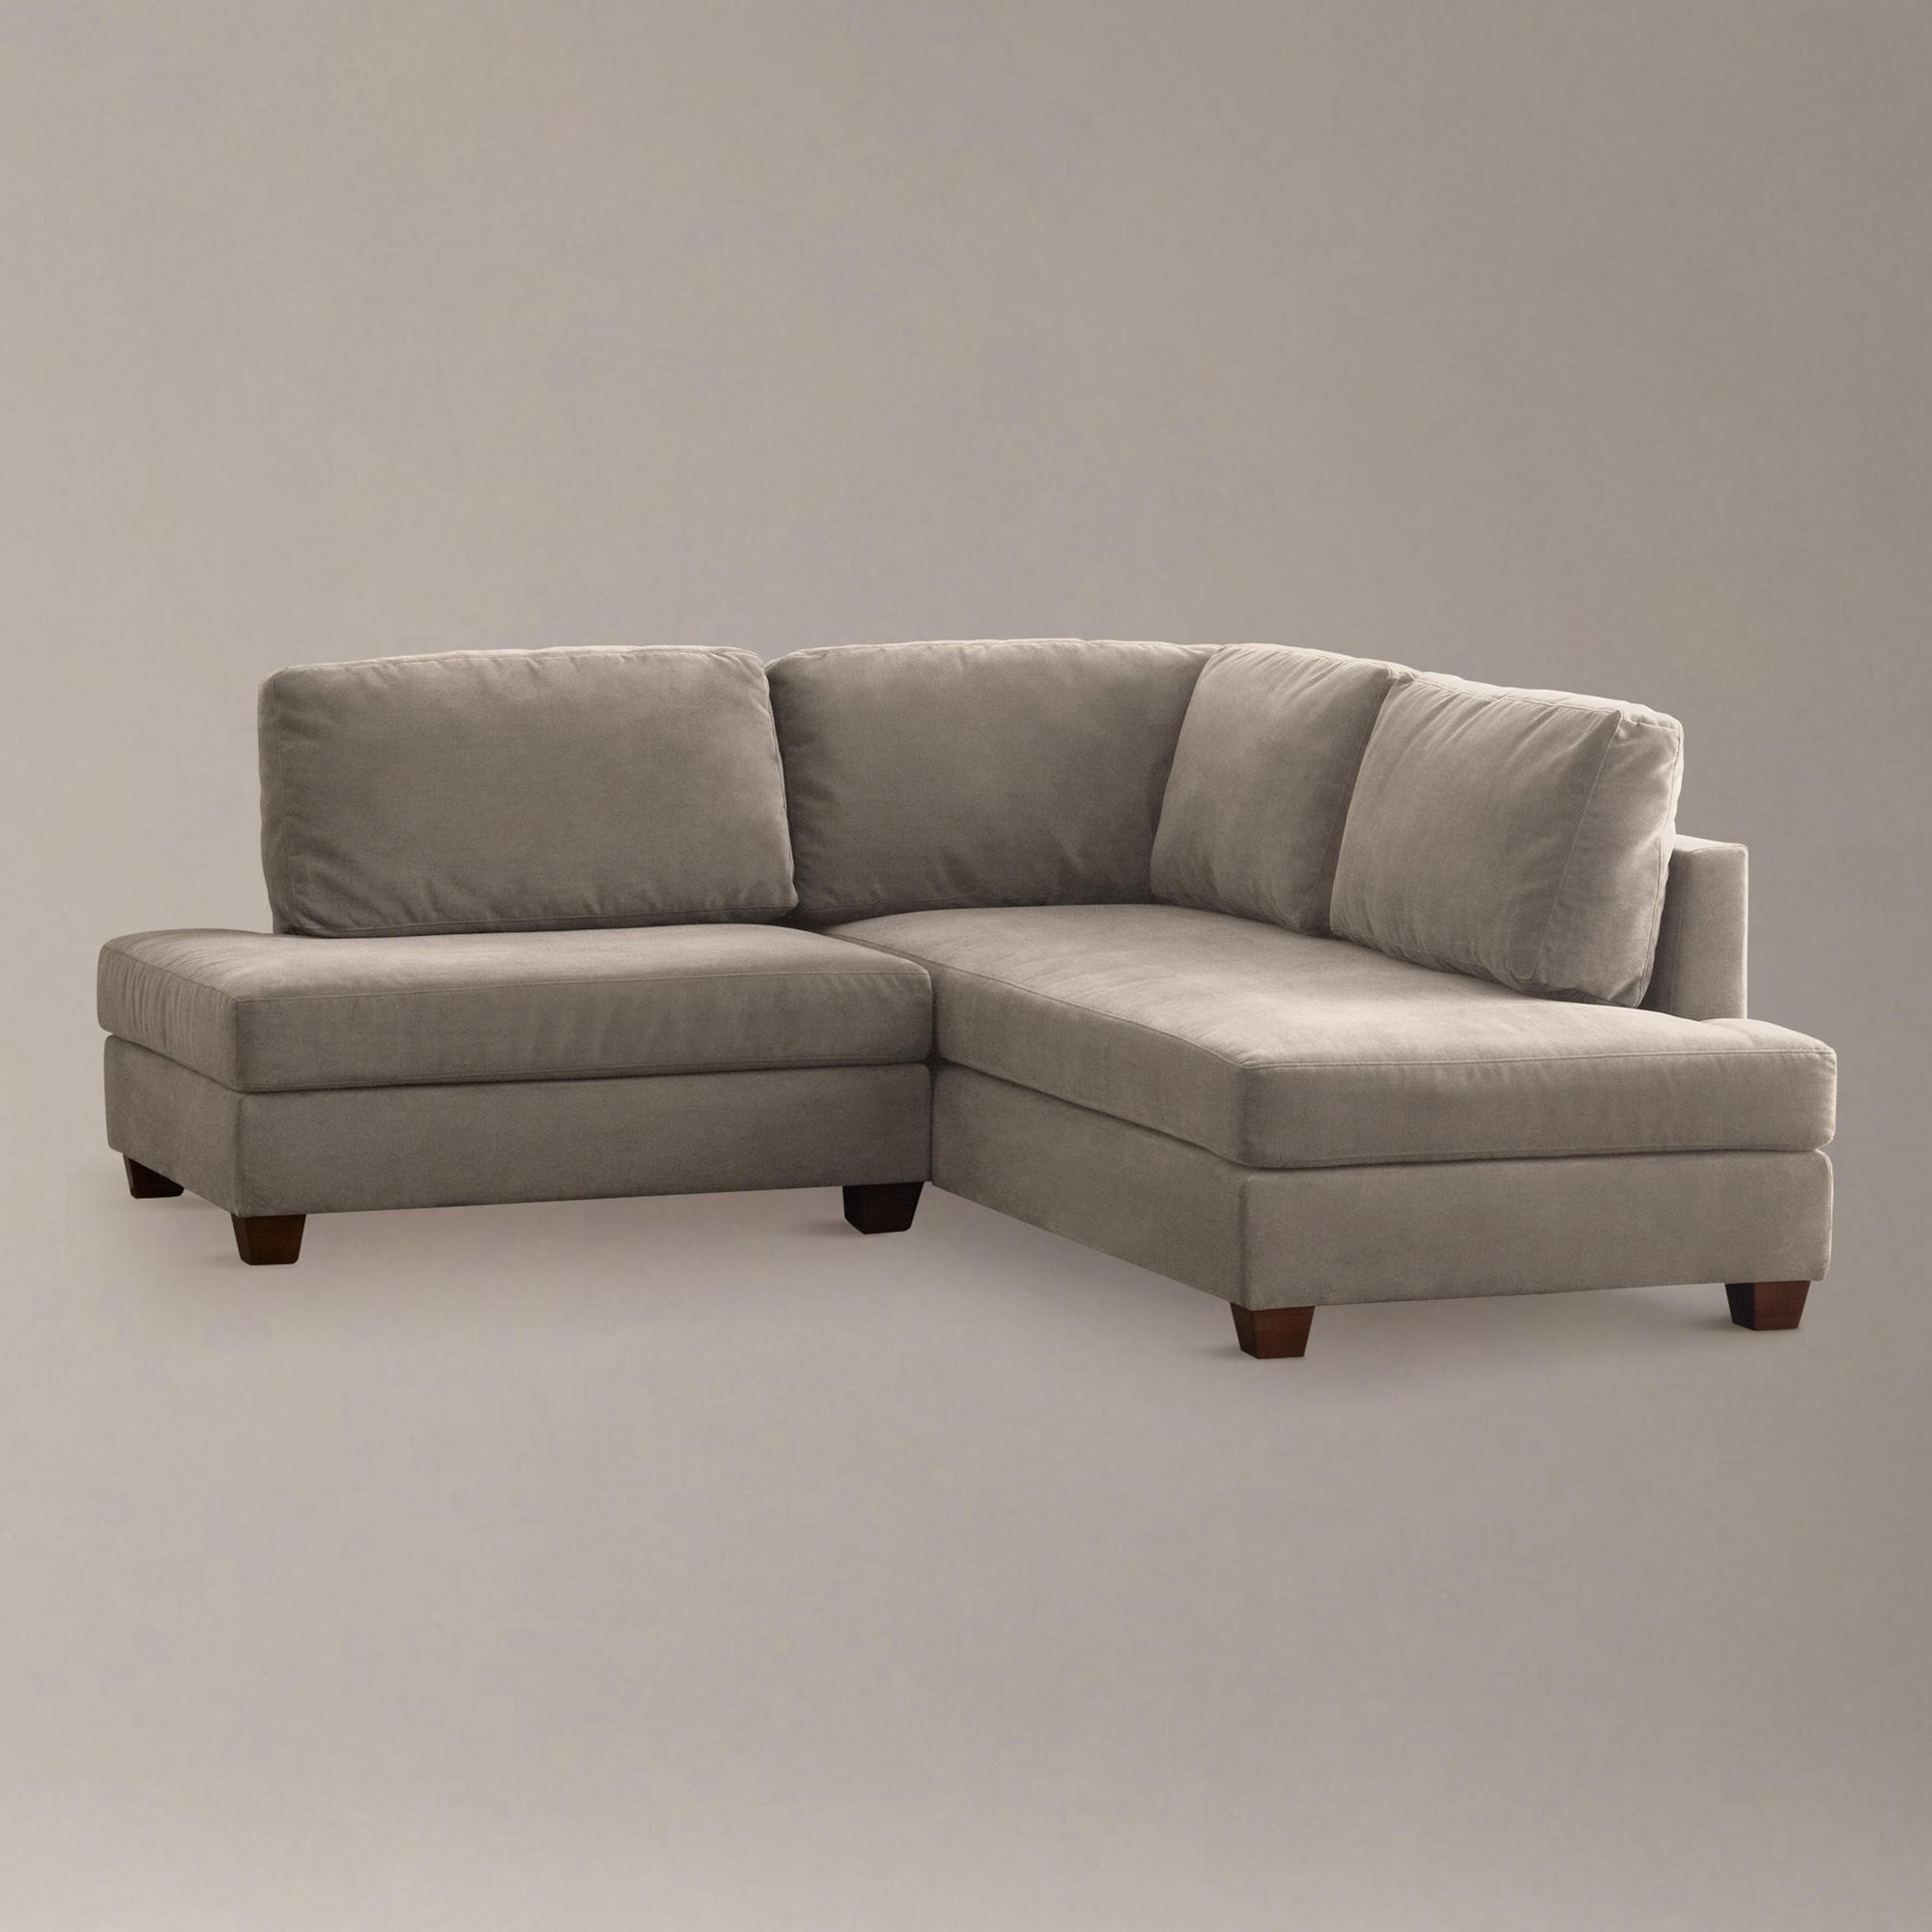 Great Lee Industries Sectional Sofa 39 With Additional Media Sofa Intended For Media Sofa Sectionals (Image 5 of 20)